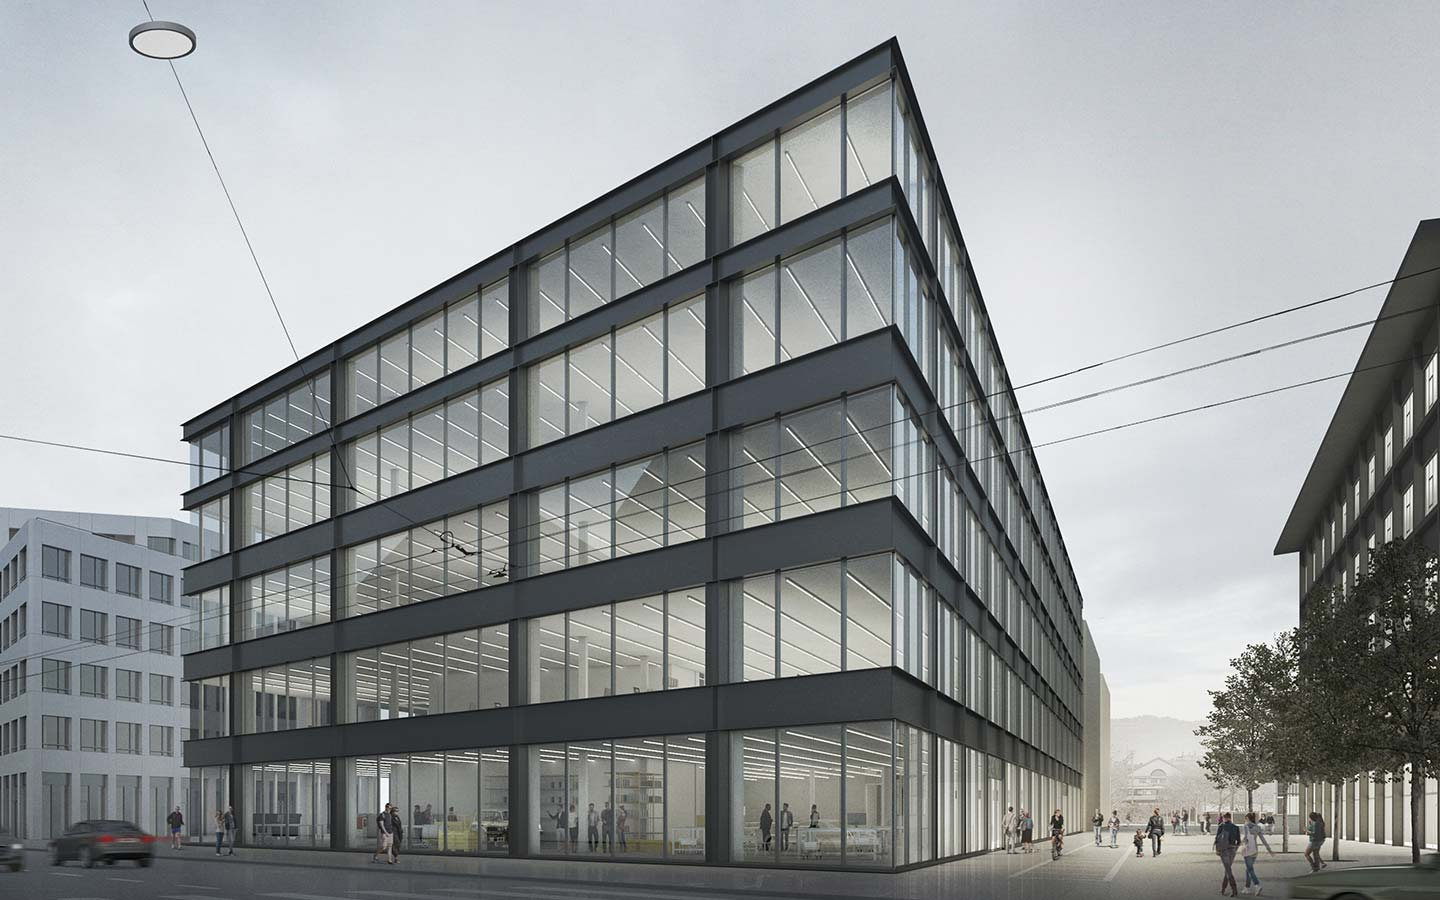 Neubau des Switzerland Innovation Parks Biel/Bienne. A 15000 square meter building on 5 floors, with coworking-spaces, laboratories, offices and a a smart factory at his core.